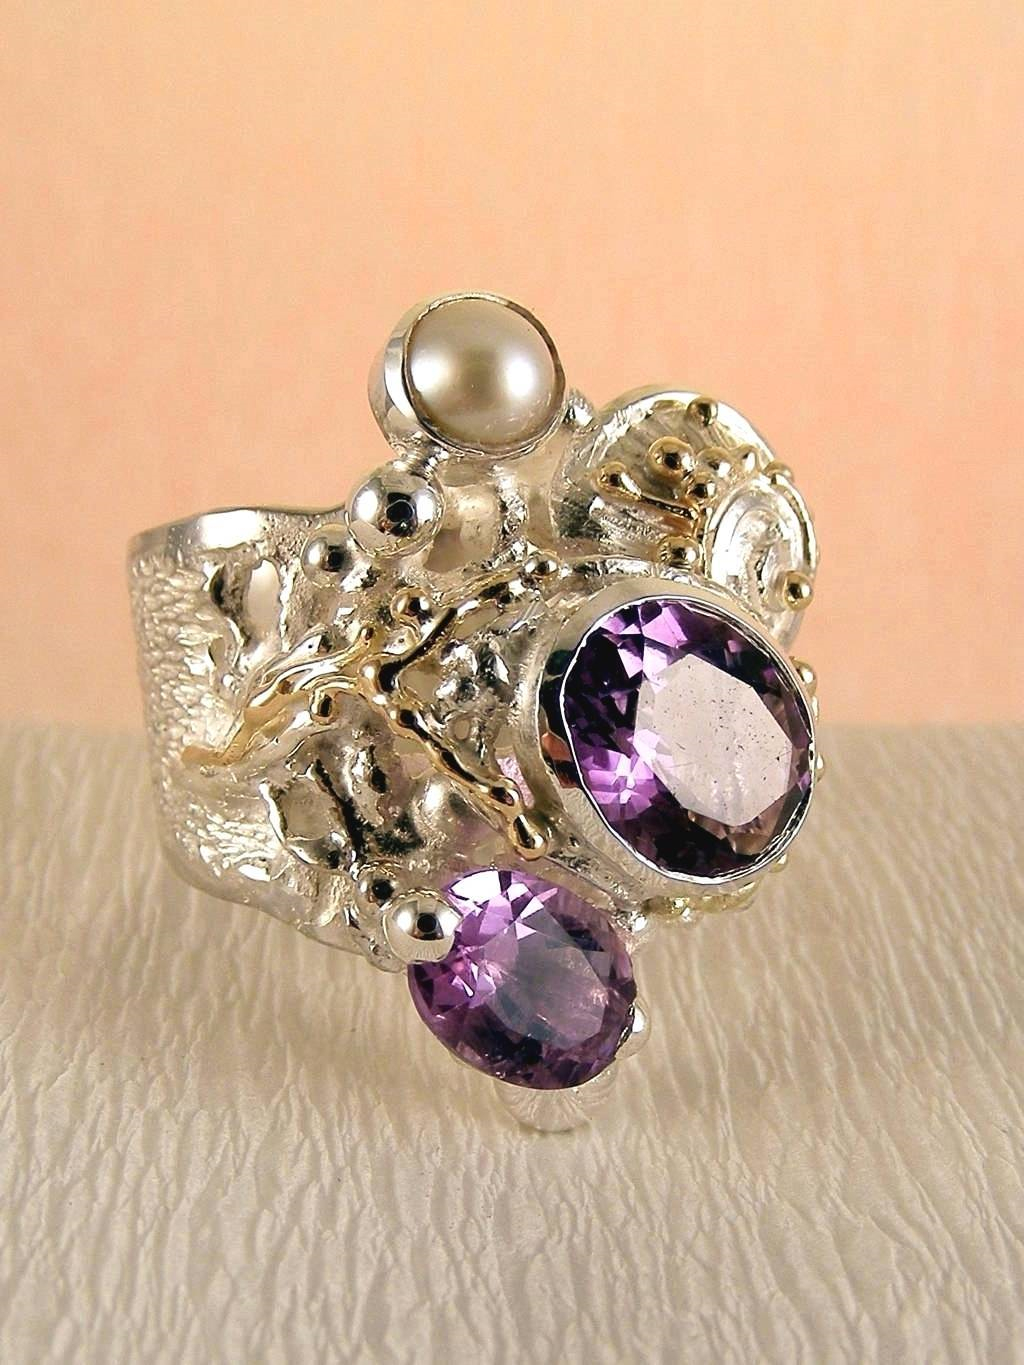 one of a kind jewellery, handmade artisan jewellery, mixed metal artisan jewellery, artisan jewellery with gemstones and pearls, Band #Ring 8442